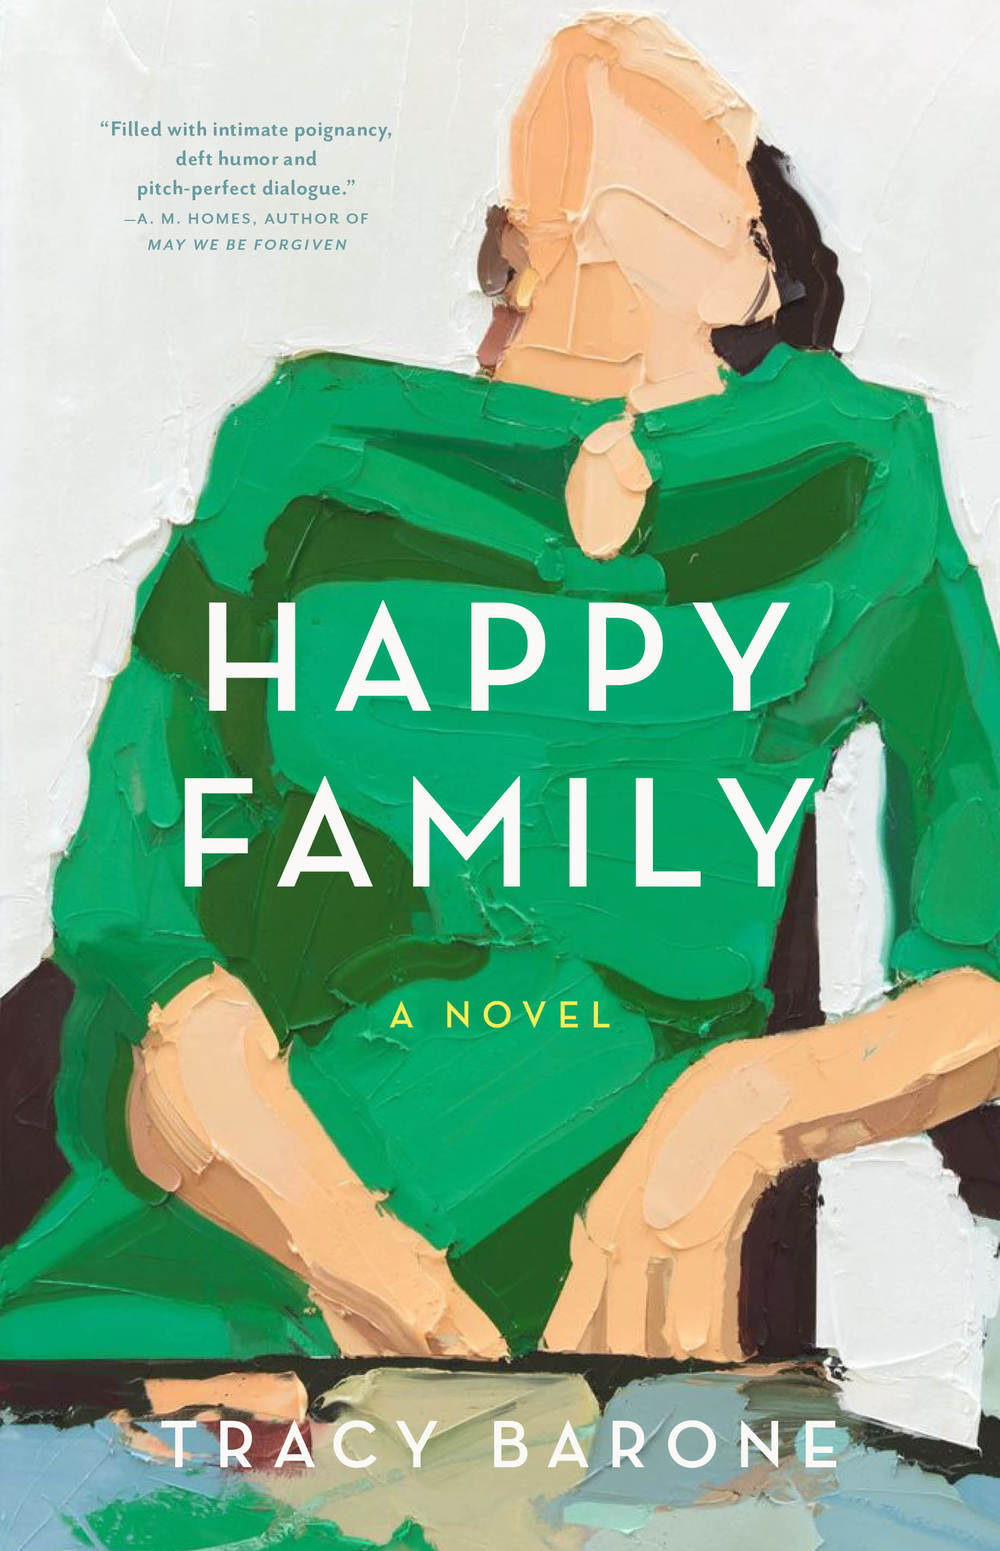 Happy Family, A Novel by Tracy Barone